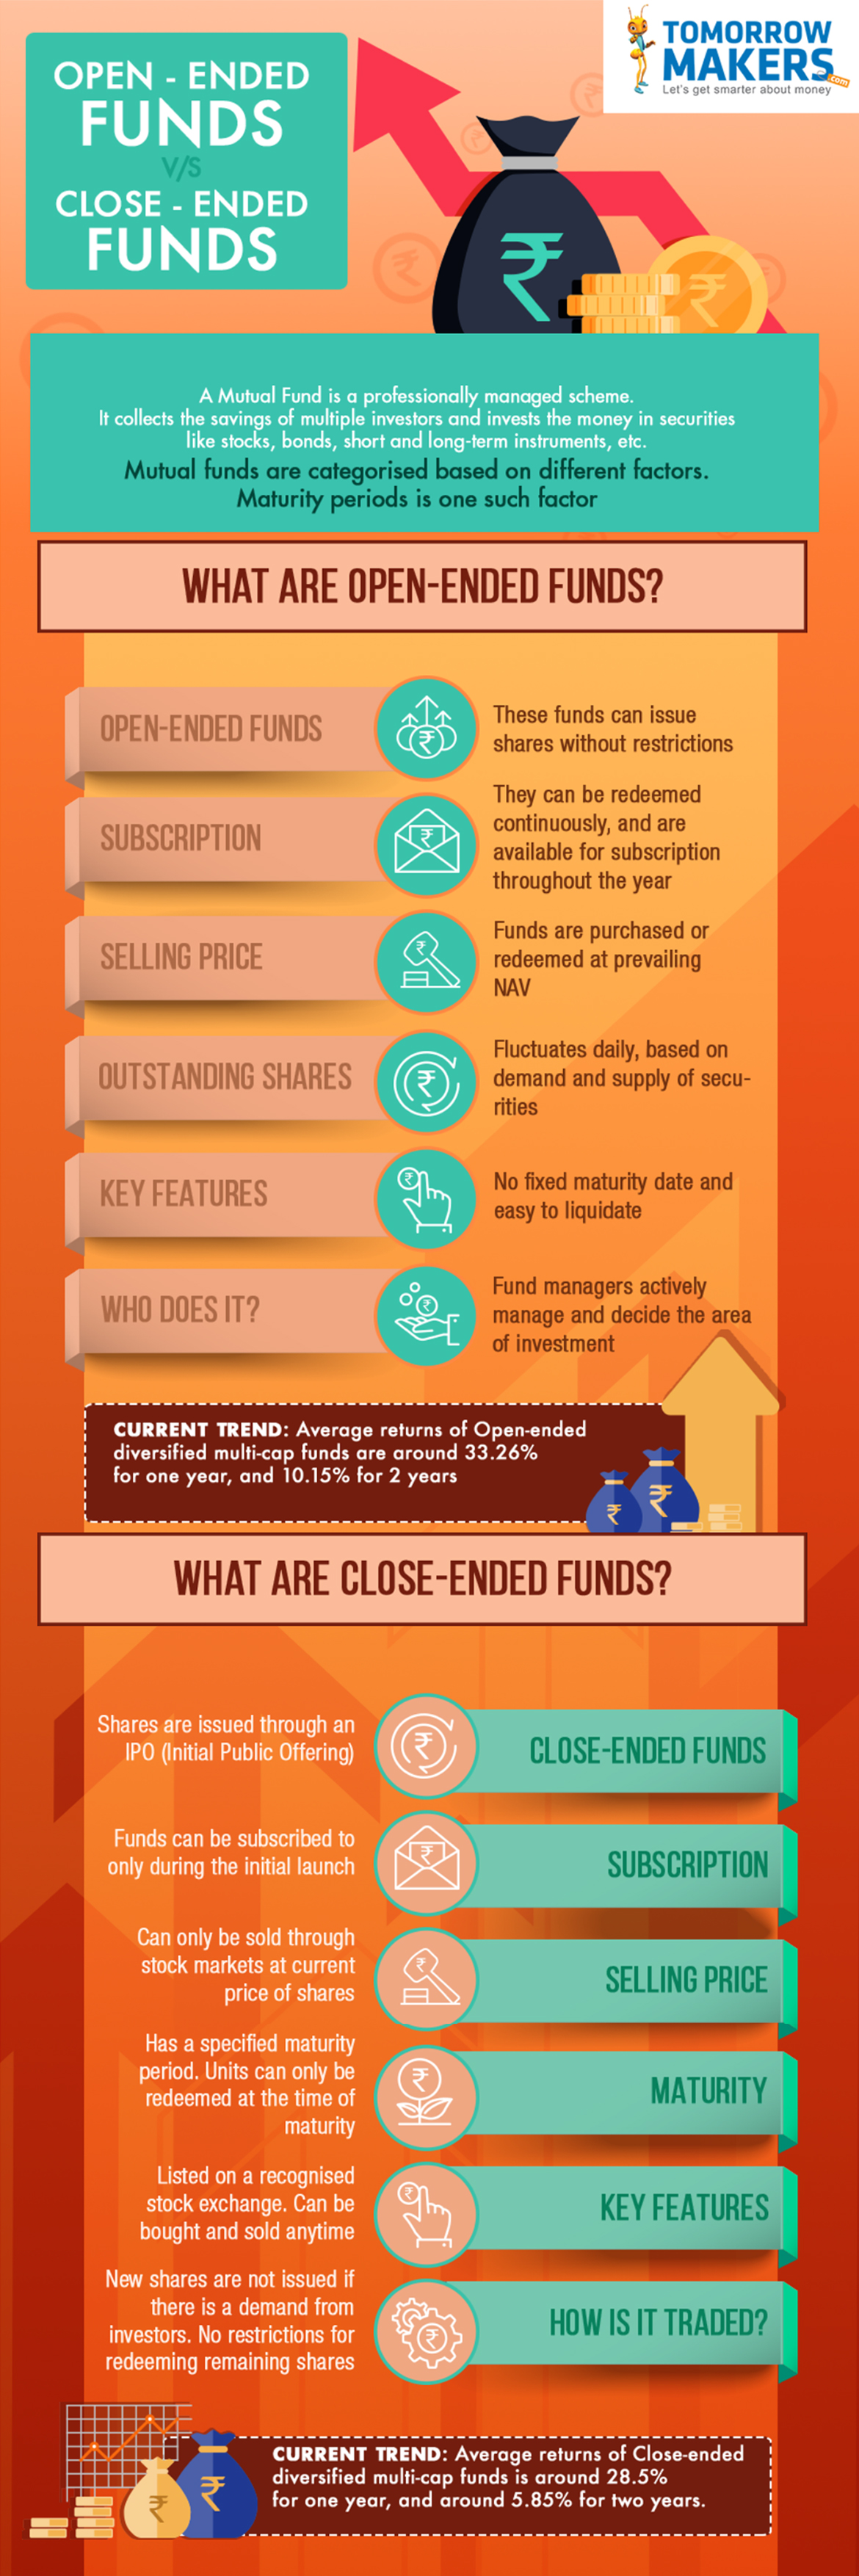 Open Ended Funds Vs Close Ended Funds infographic